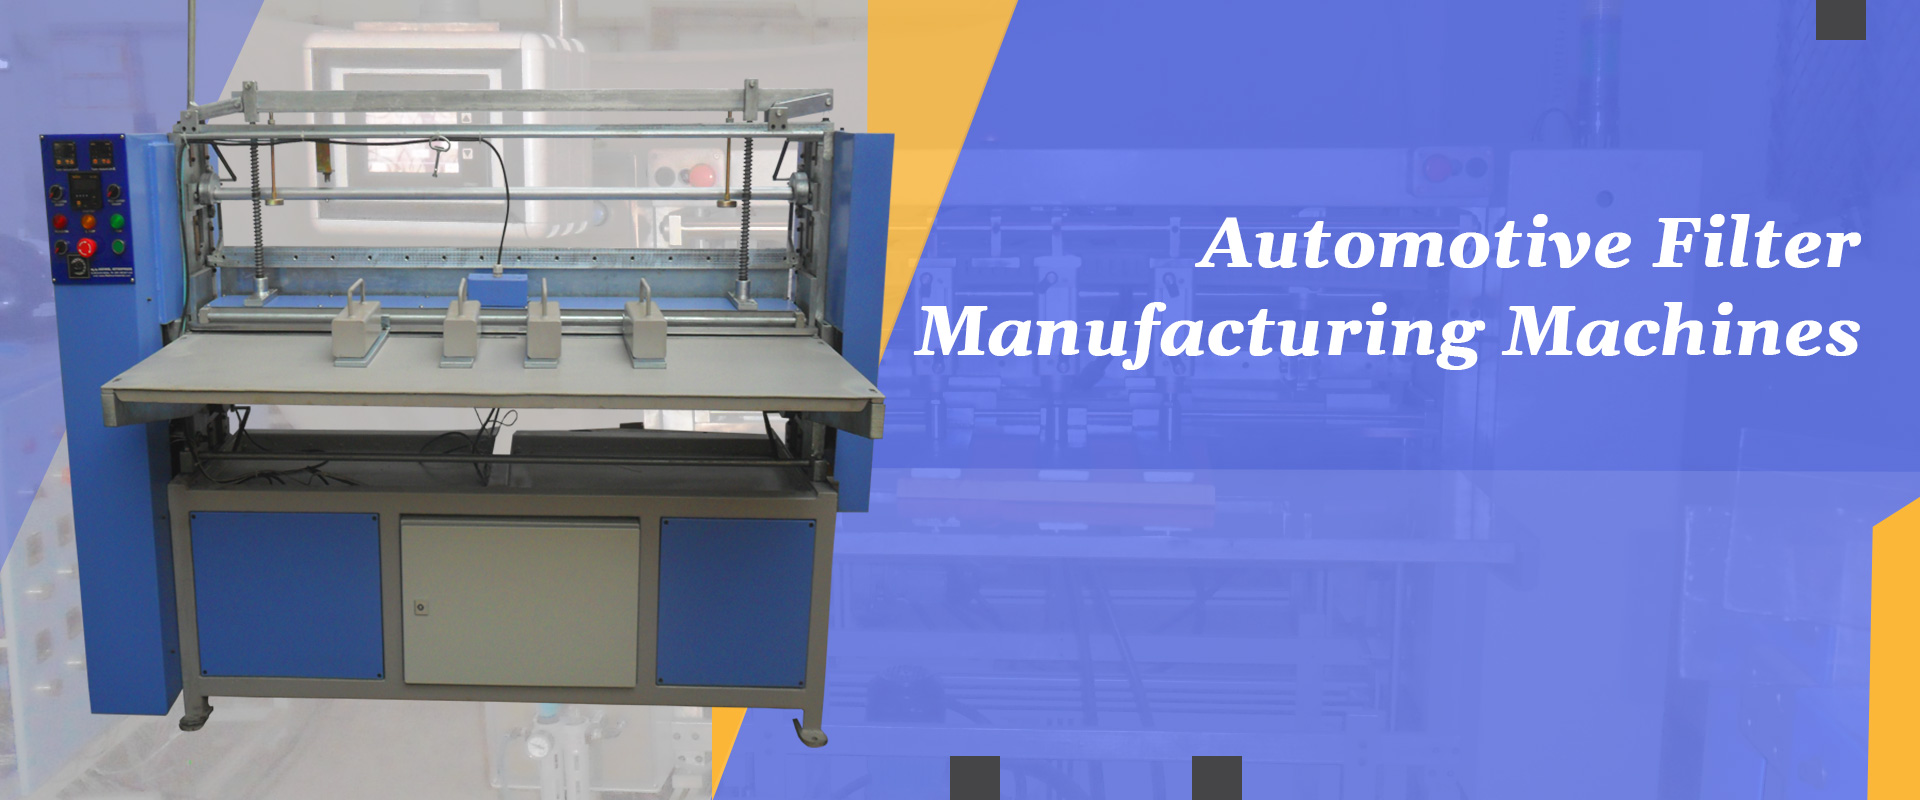 Automotive Filter  Manufacturing Machines